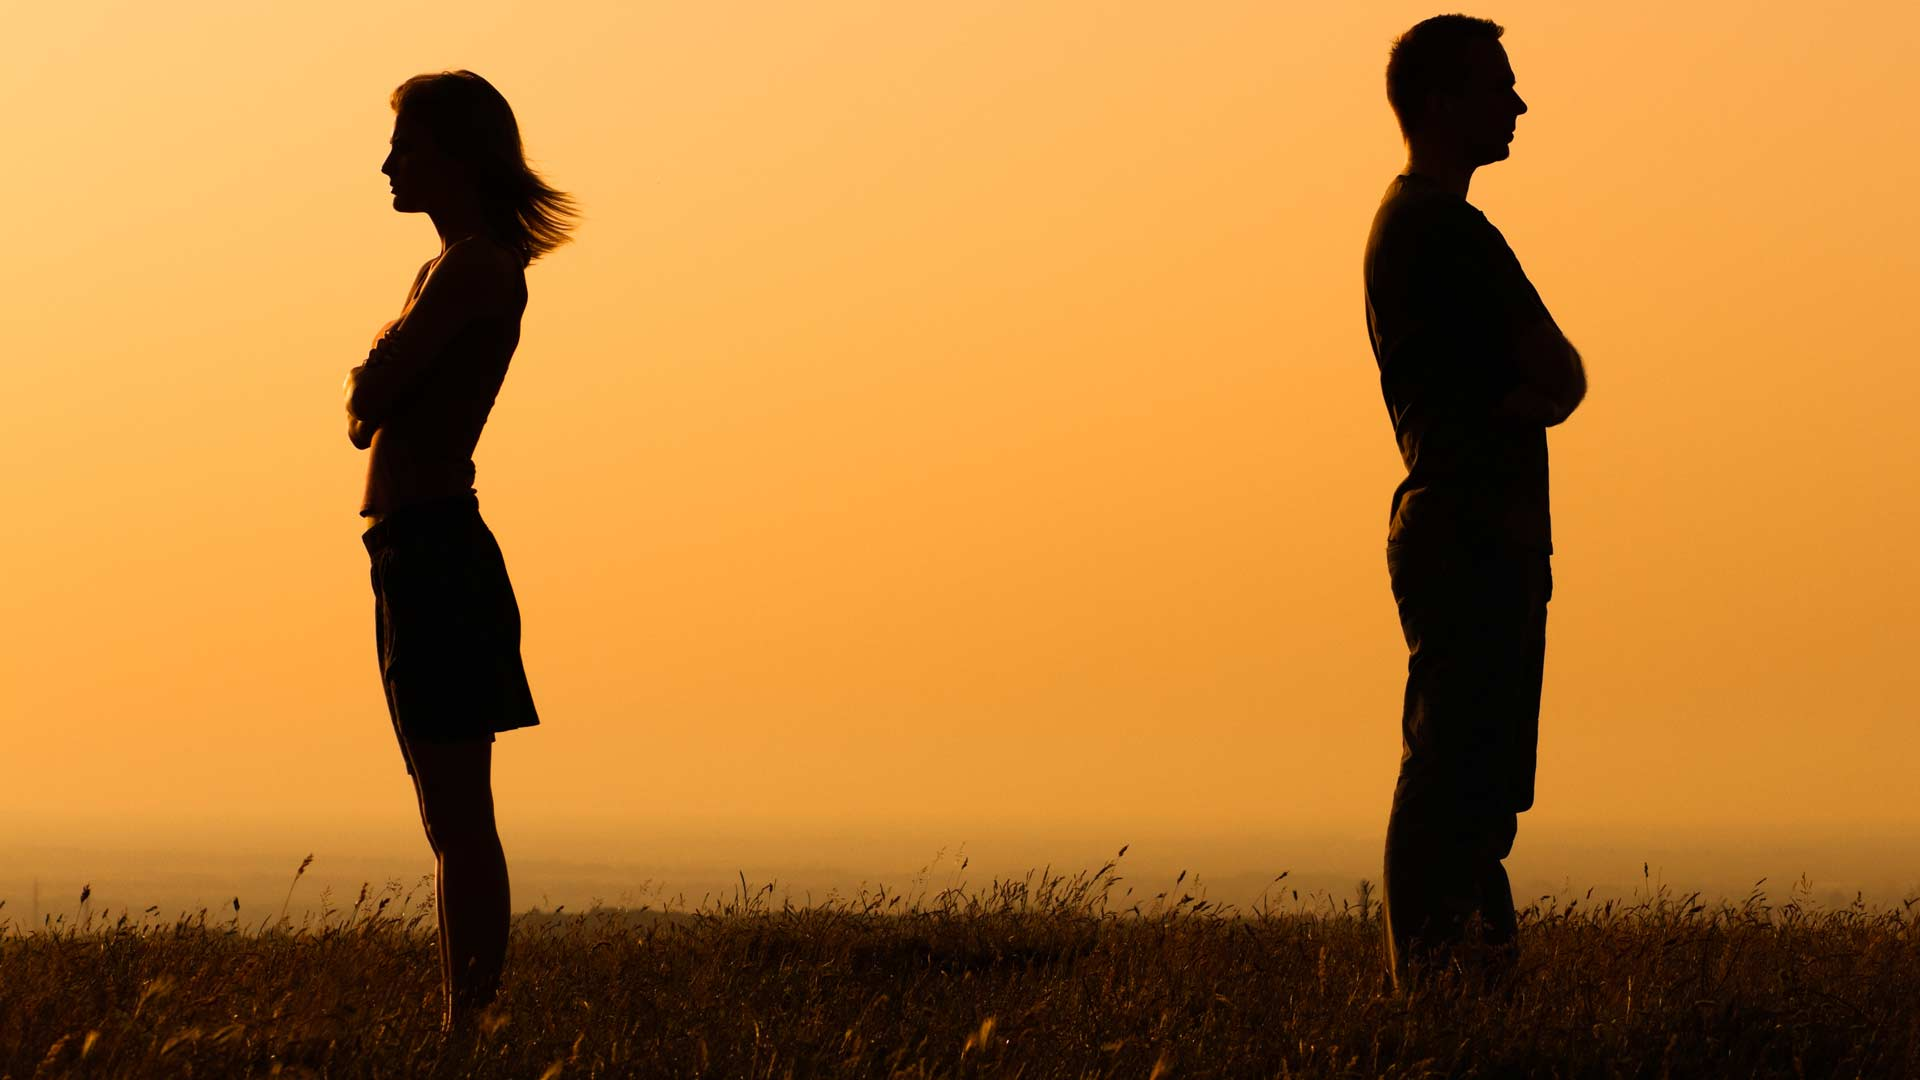 52255-how-much-does-divorce-impact-emotional-security